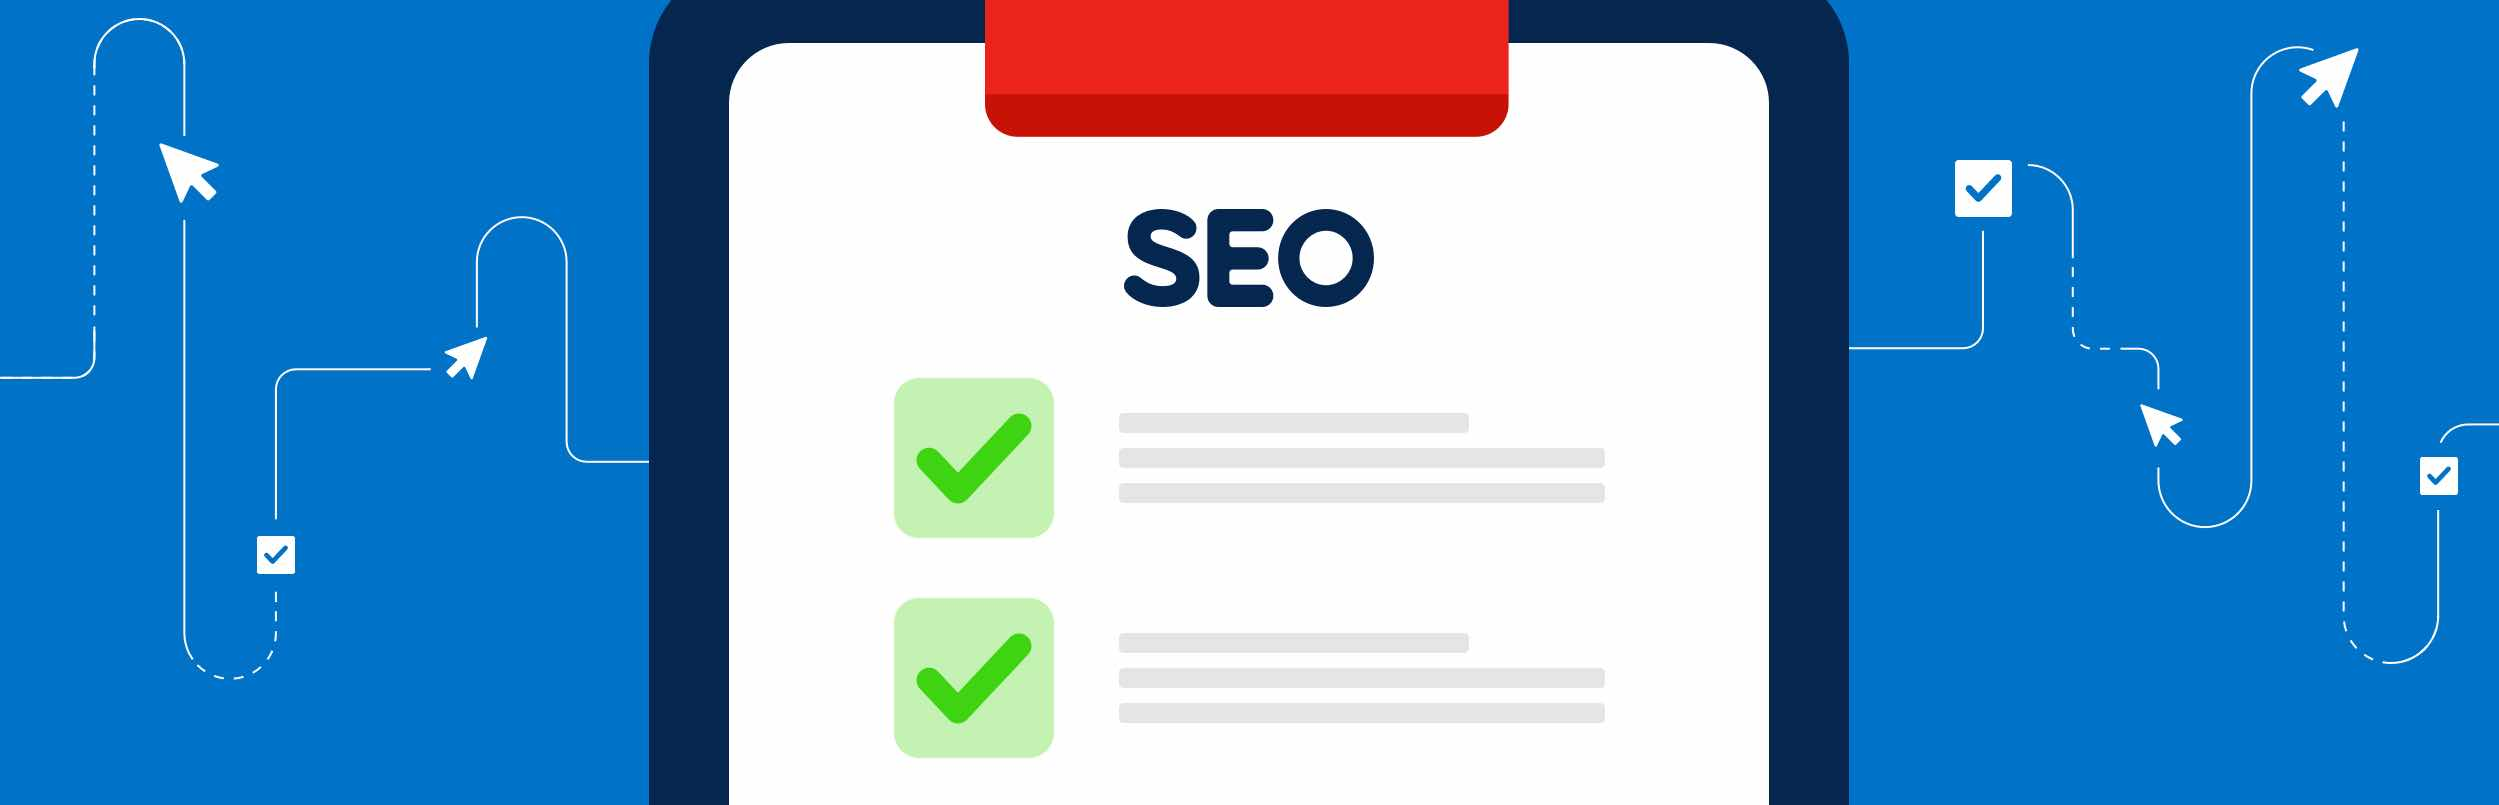 SEO Is The Best Tool To Expand Business To The Southeast Asian Markets